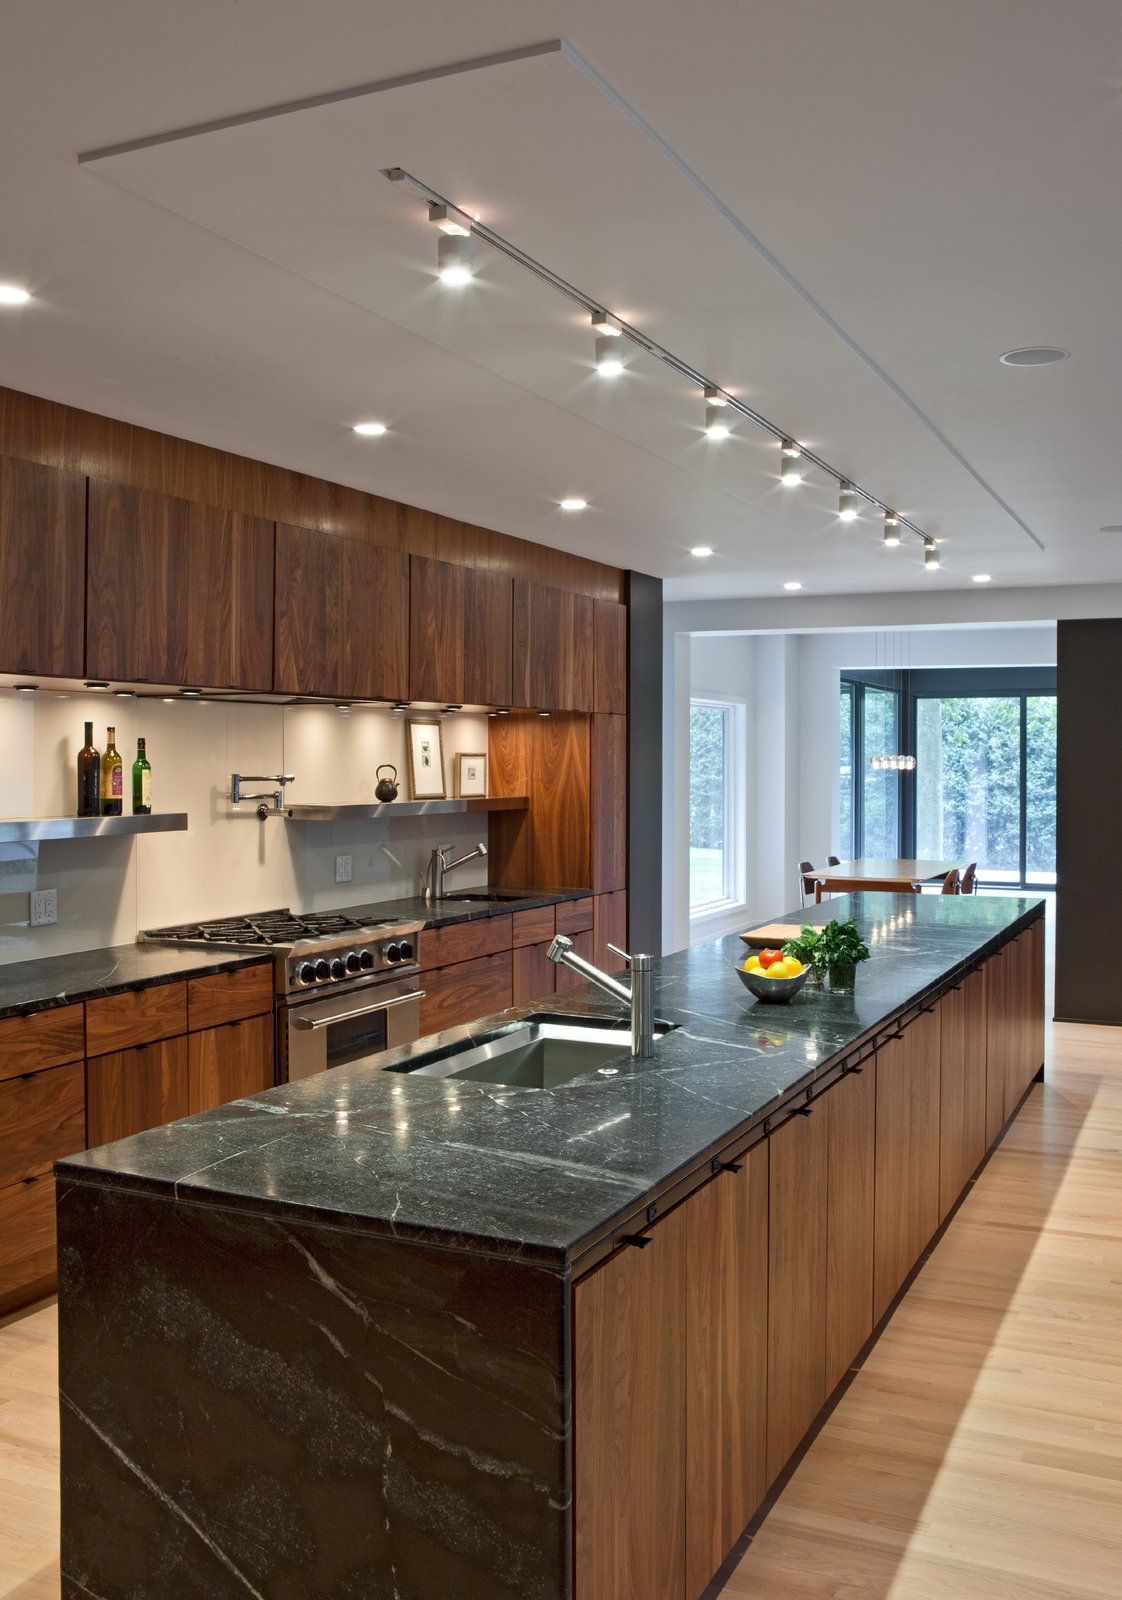 Kitchen by Jamel from 322 Reinvented